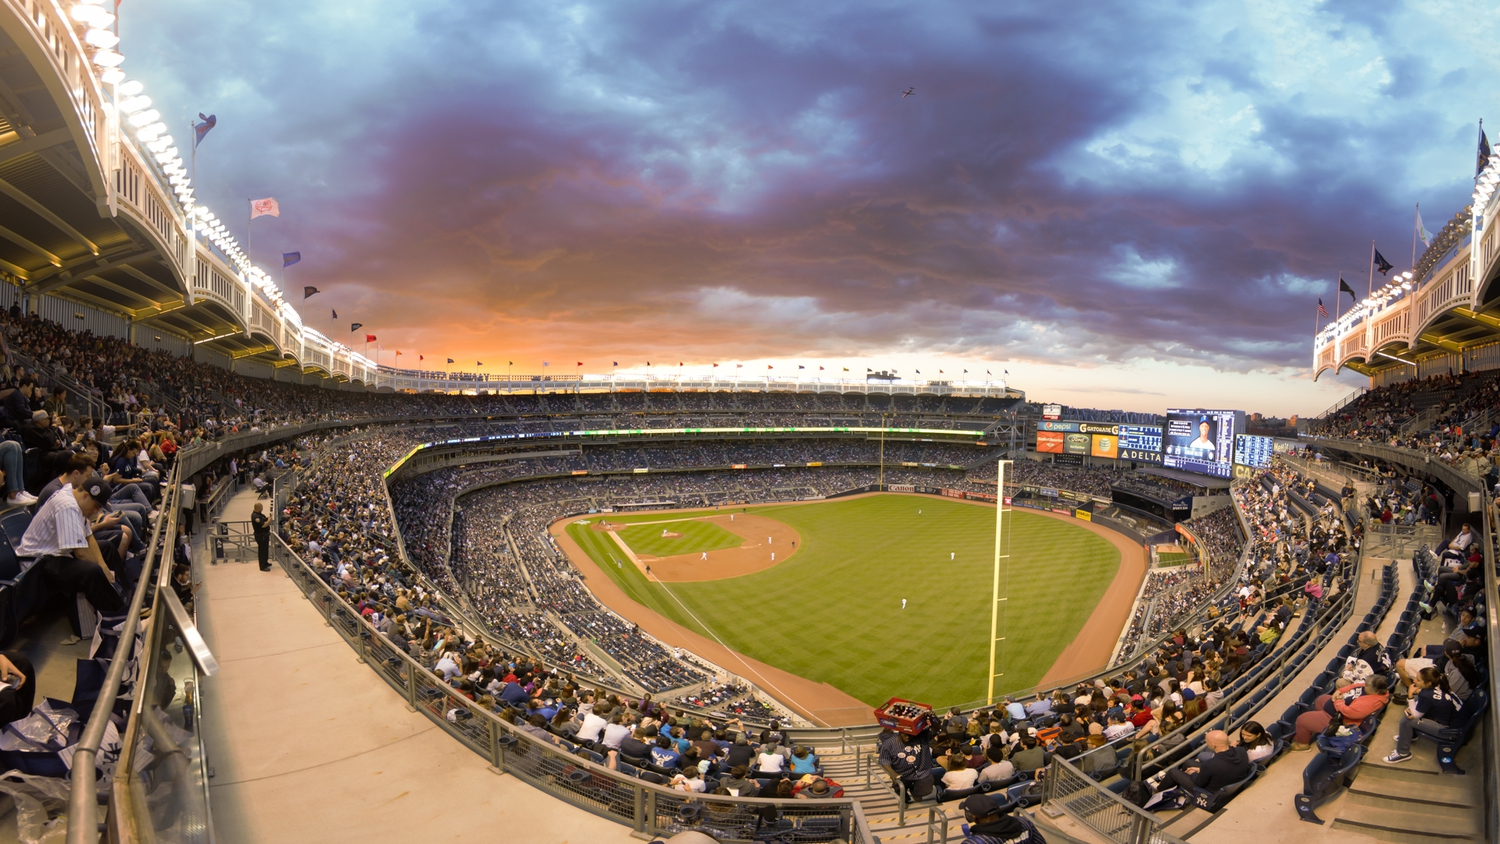 Yankee Stadium | An amazing sunset at Yankee Stadium while watching the Yankees play the Rangers.  Notice the plane in the shot, climbing out of takeoff from LaGuardia.